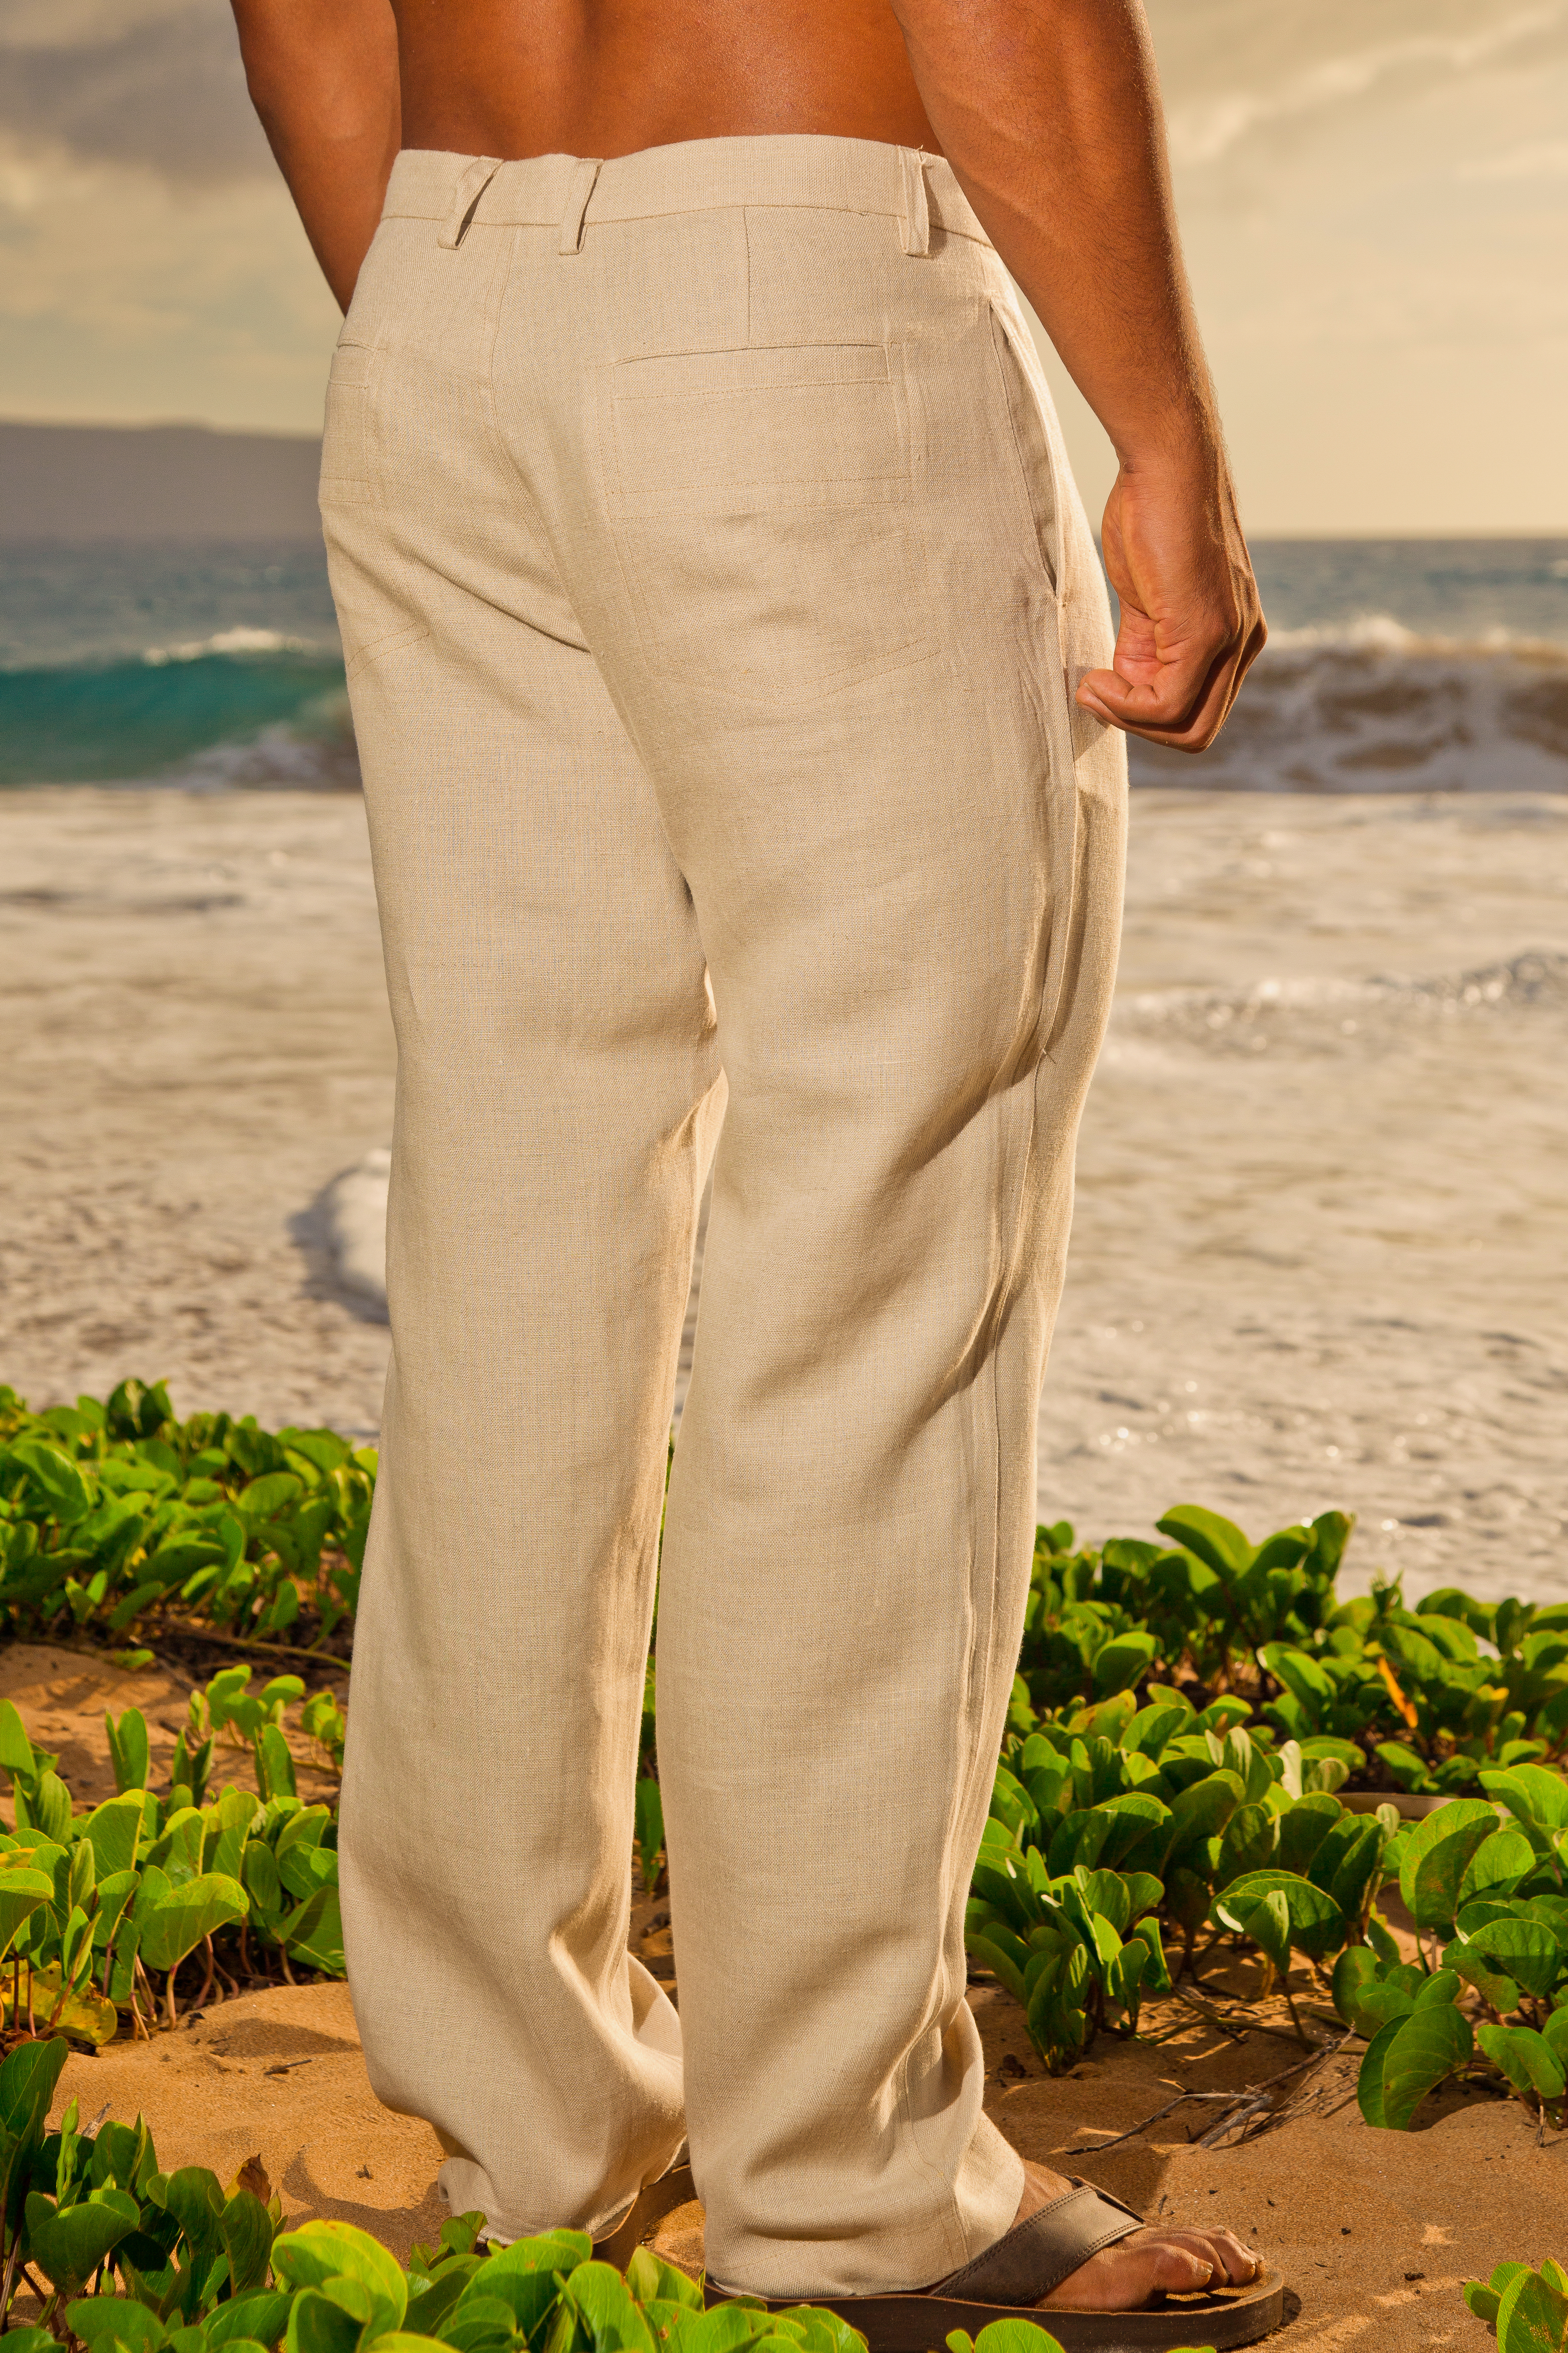 Beach Wedding Shirts For Men